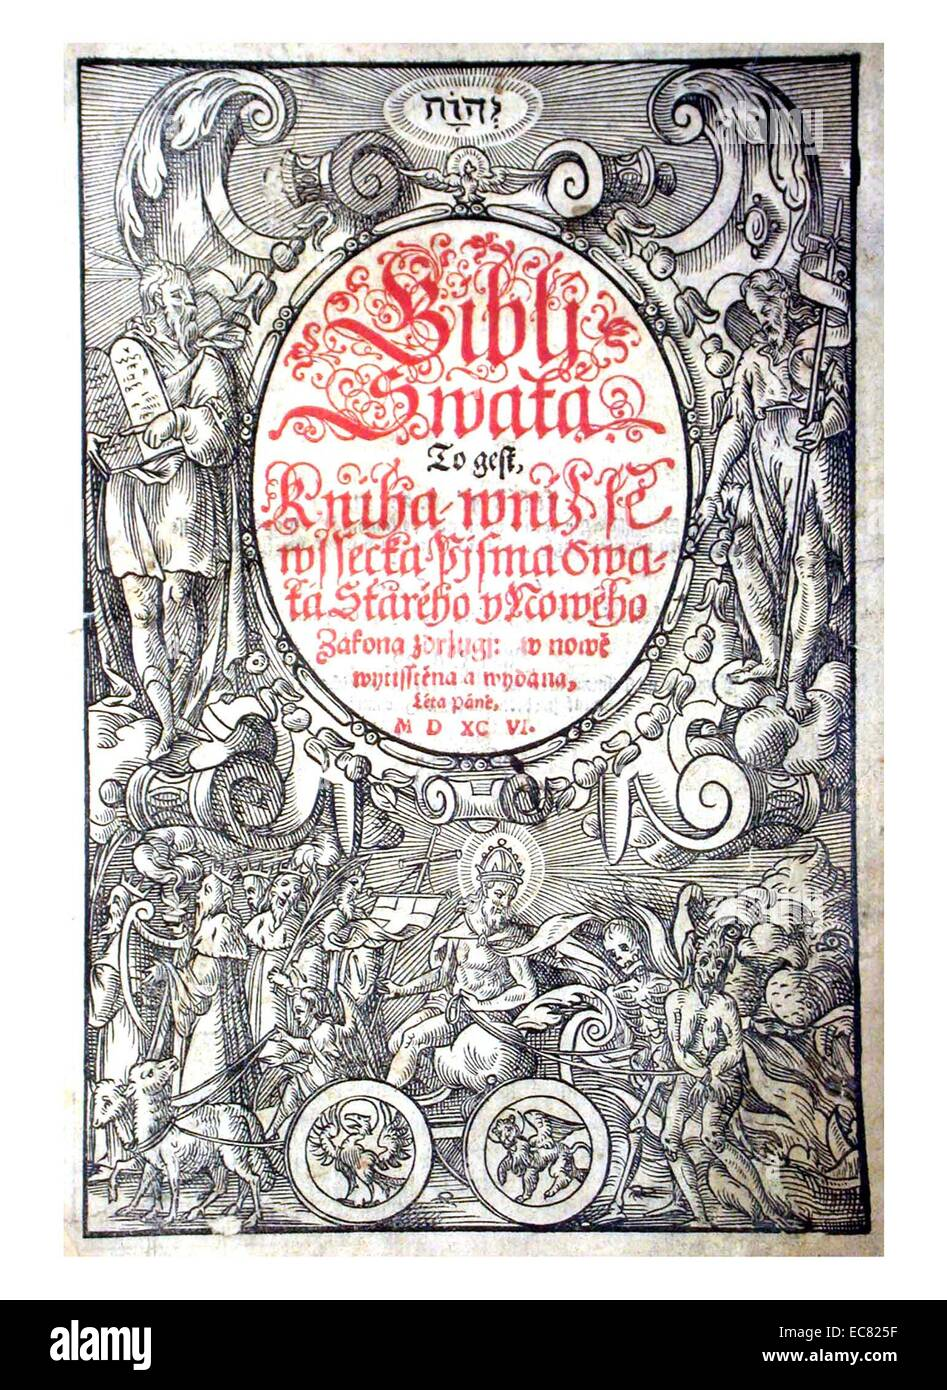 Front cover of a Kralitz Bohemian bible, an edition of the Kralice Bible, published by Protestant Unitas Fratrum. - Stock Image